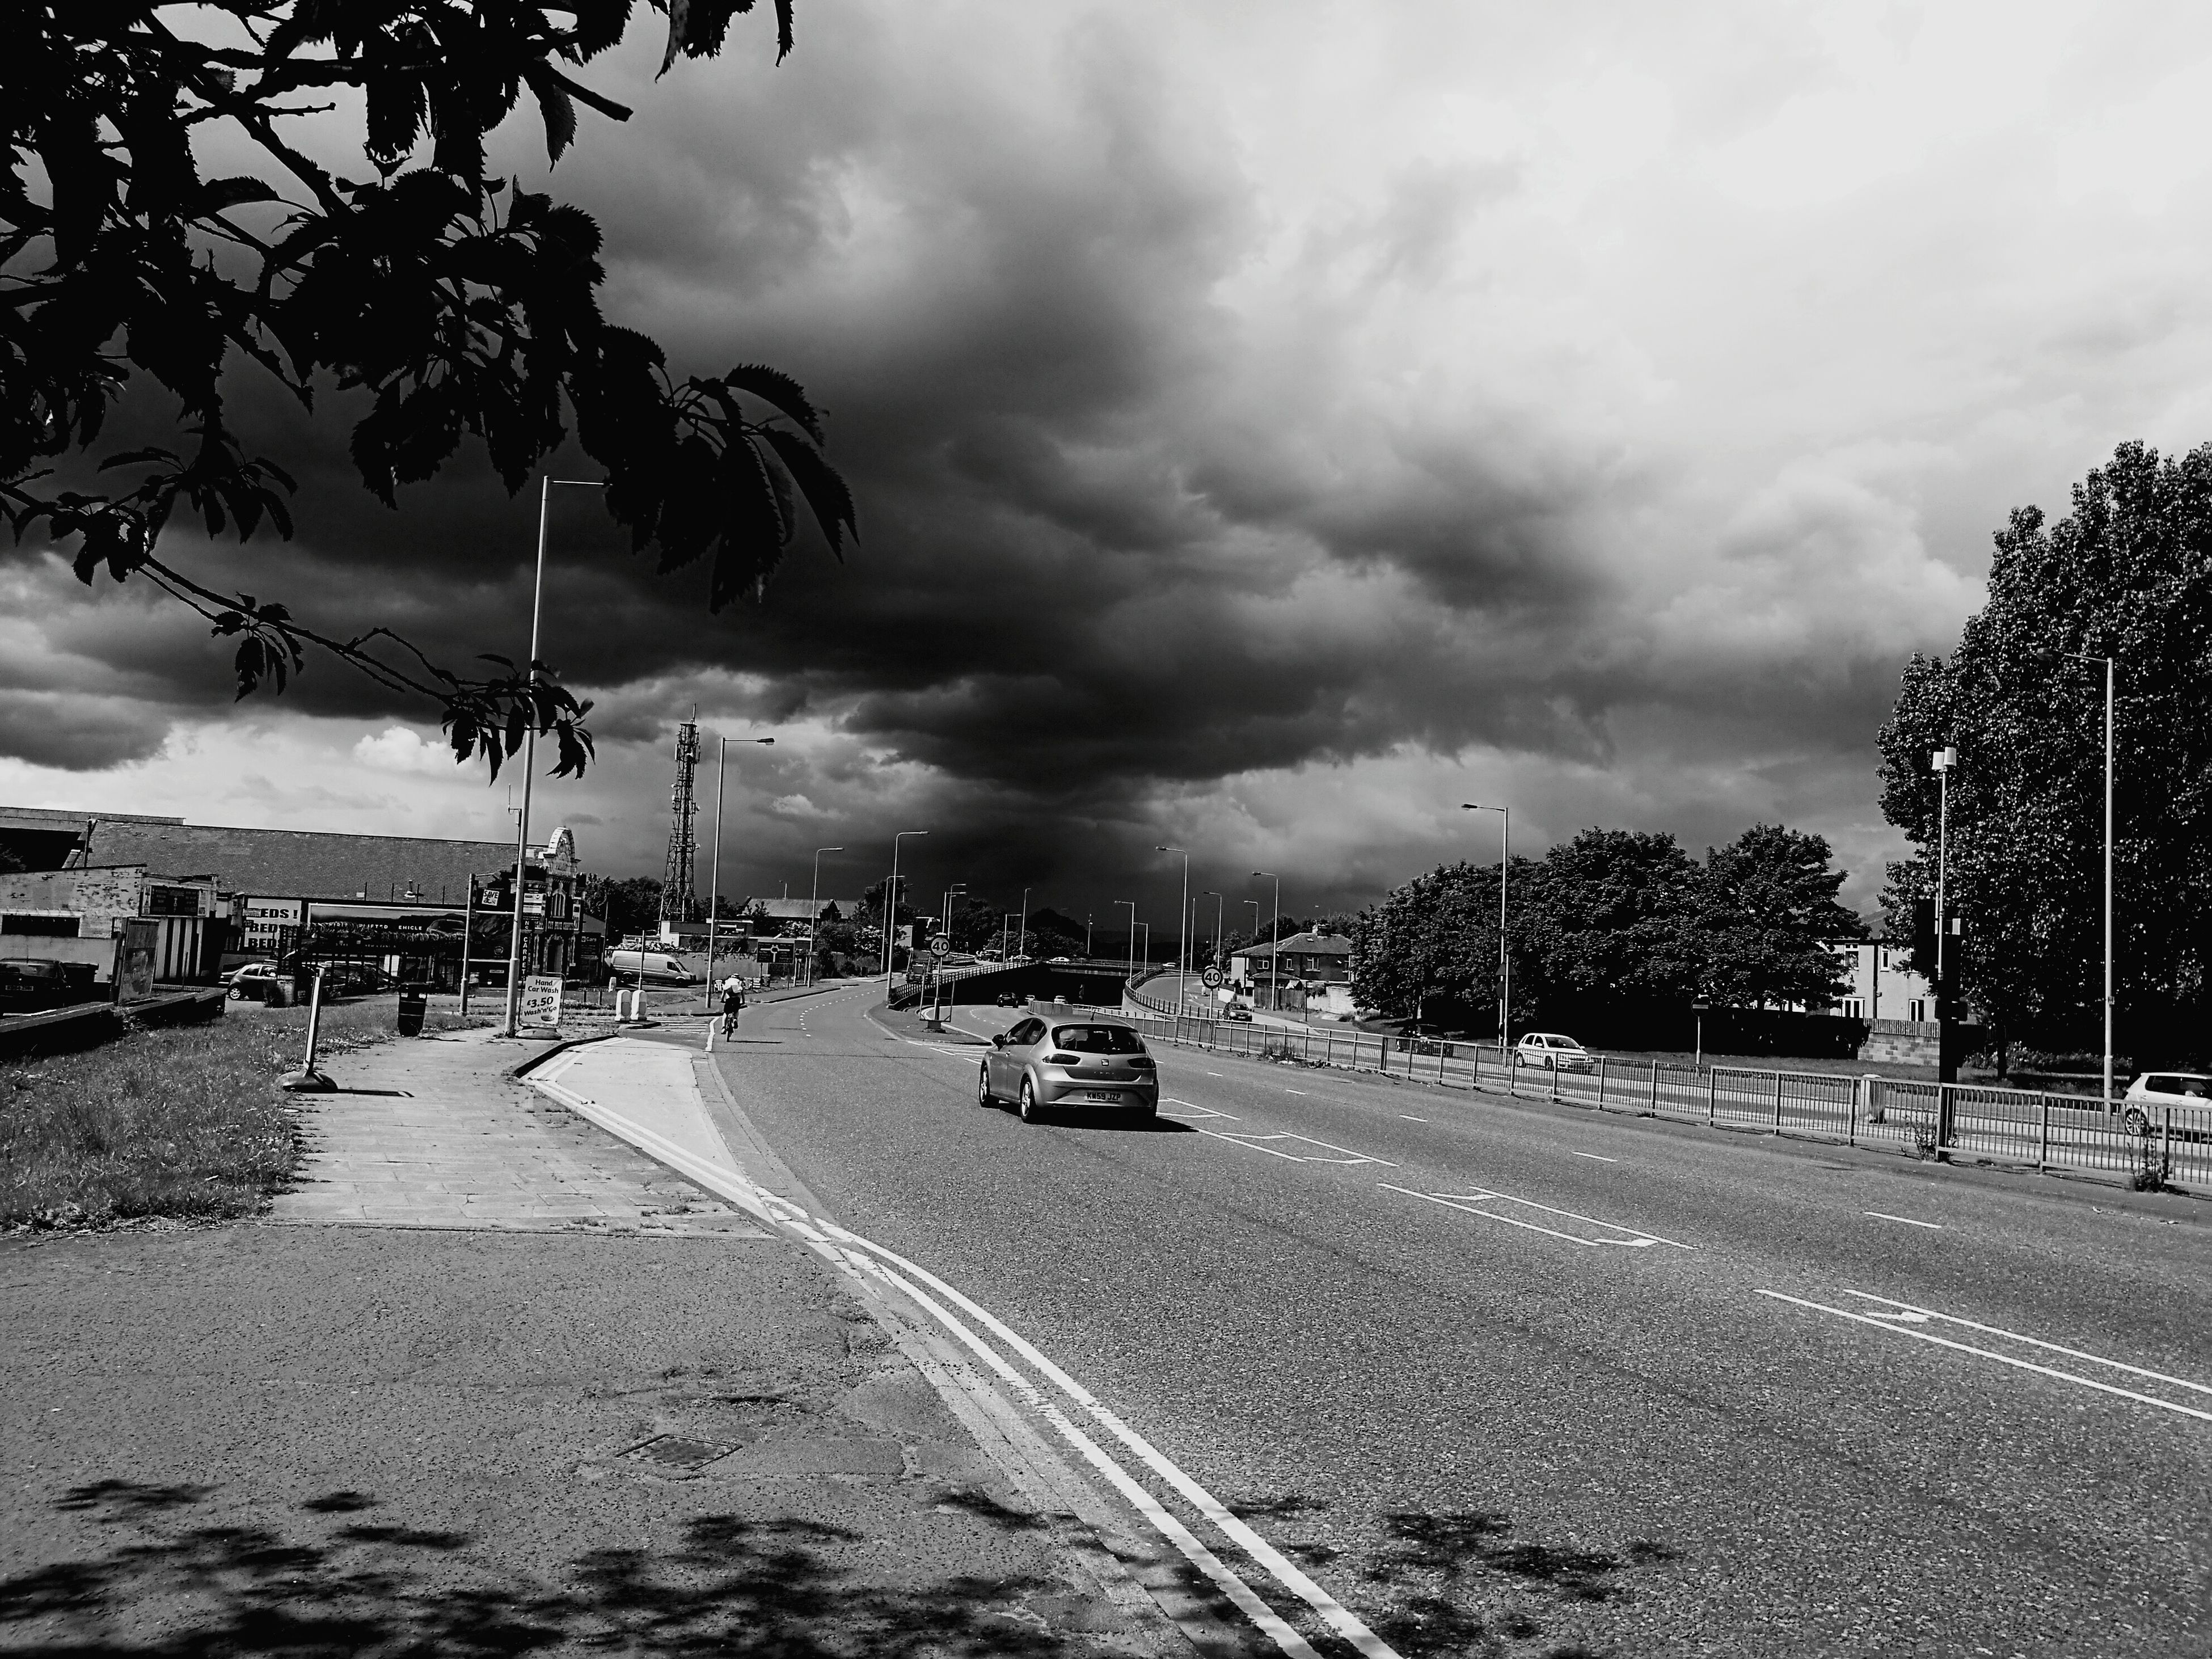 sky, transportation, cloud - sky, road, tree, the way forward, cloudy, street, land vehicle, car, mode of transport, cloud, street light, road marking, diminishing perspective, vanishing point, outdoors, overcast, incidental people, weather